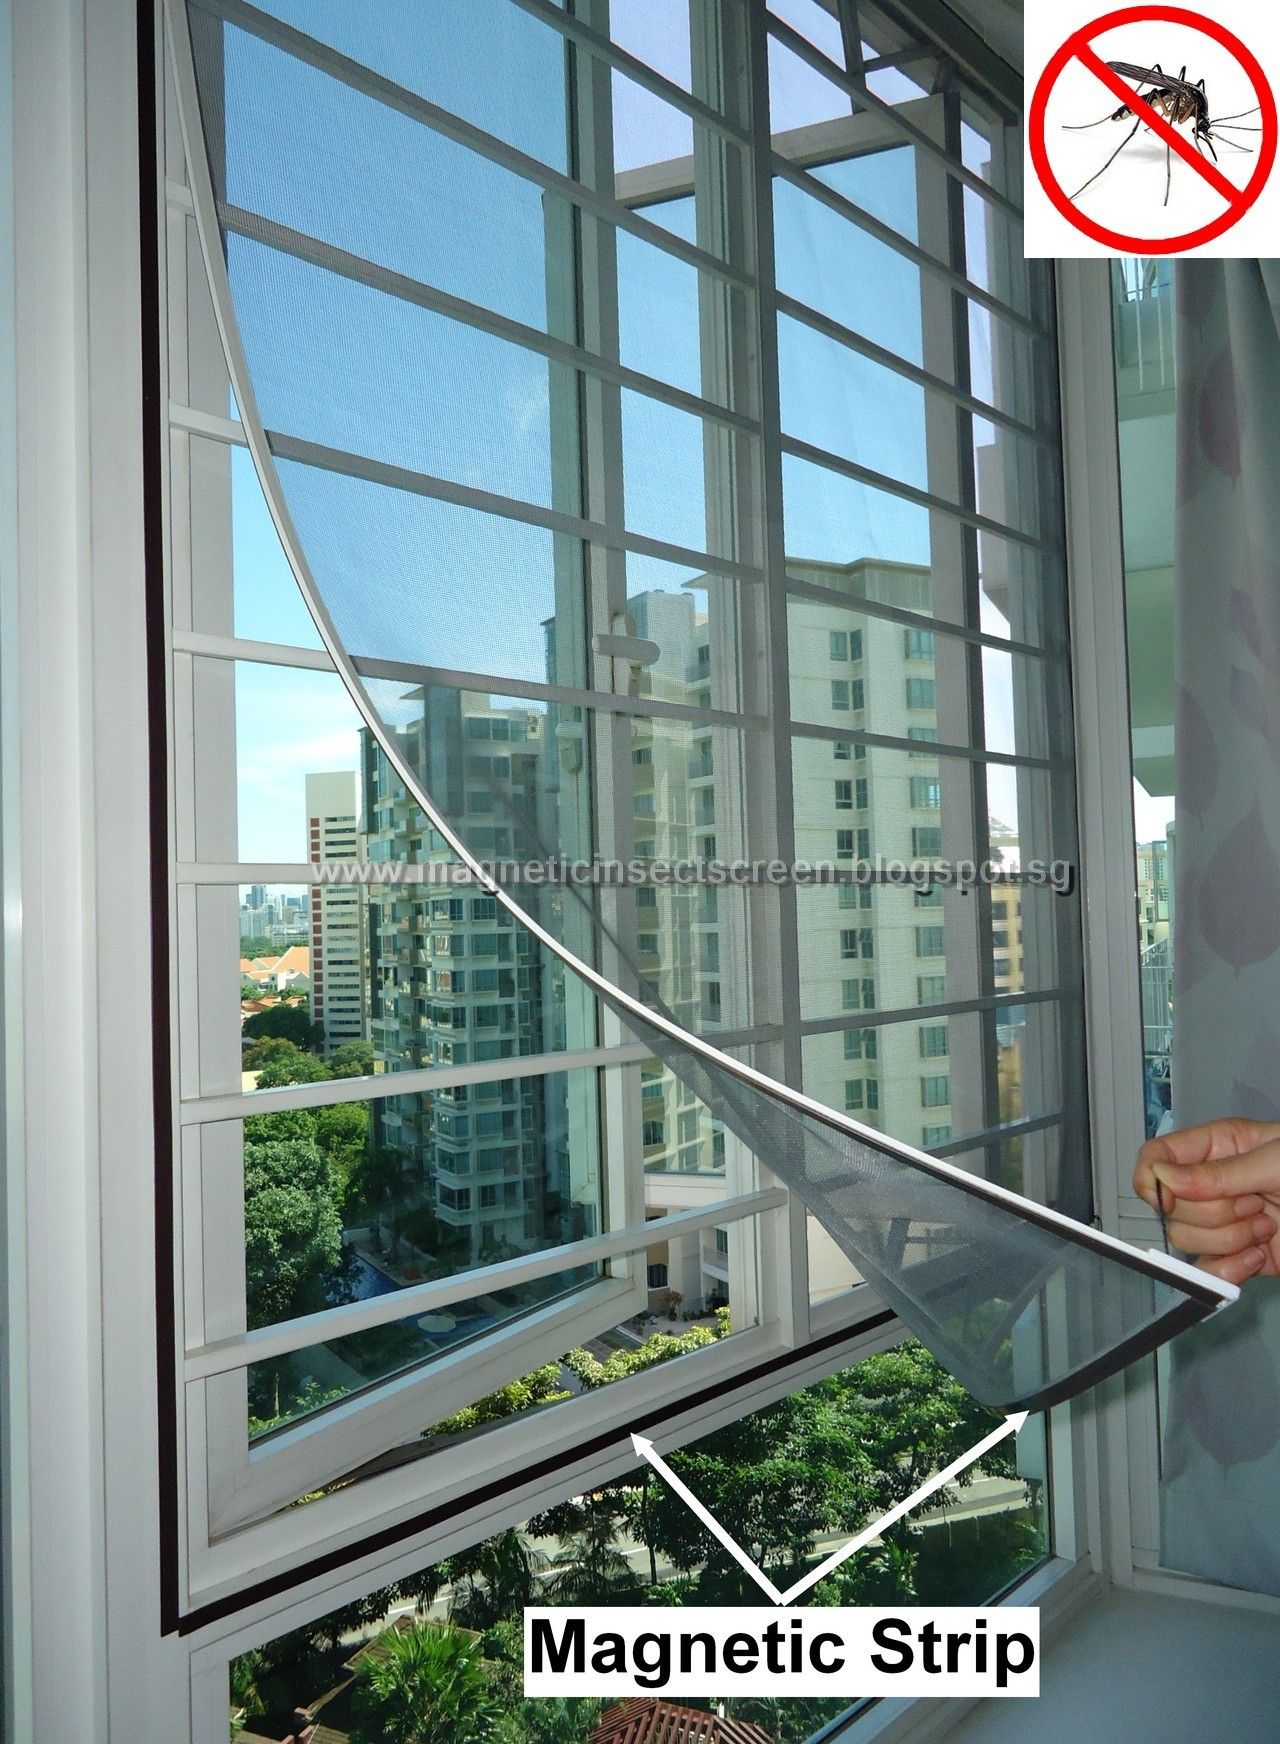 DIY Magnetic Mosquito Insect Screen Kit SG Seller Window Netting Net Mesh Fly Bug Lizard Cockroach Anti Dengue Singapore